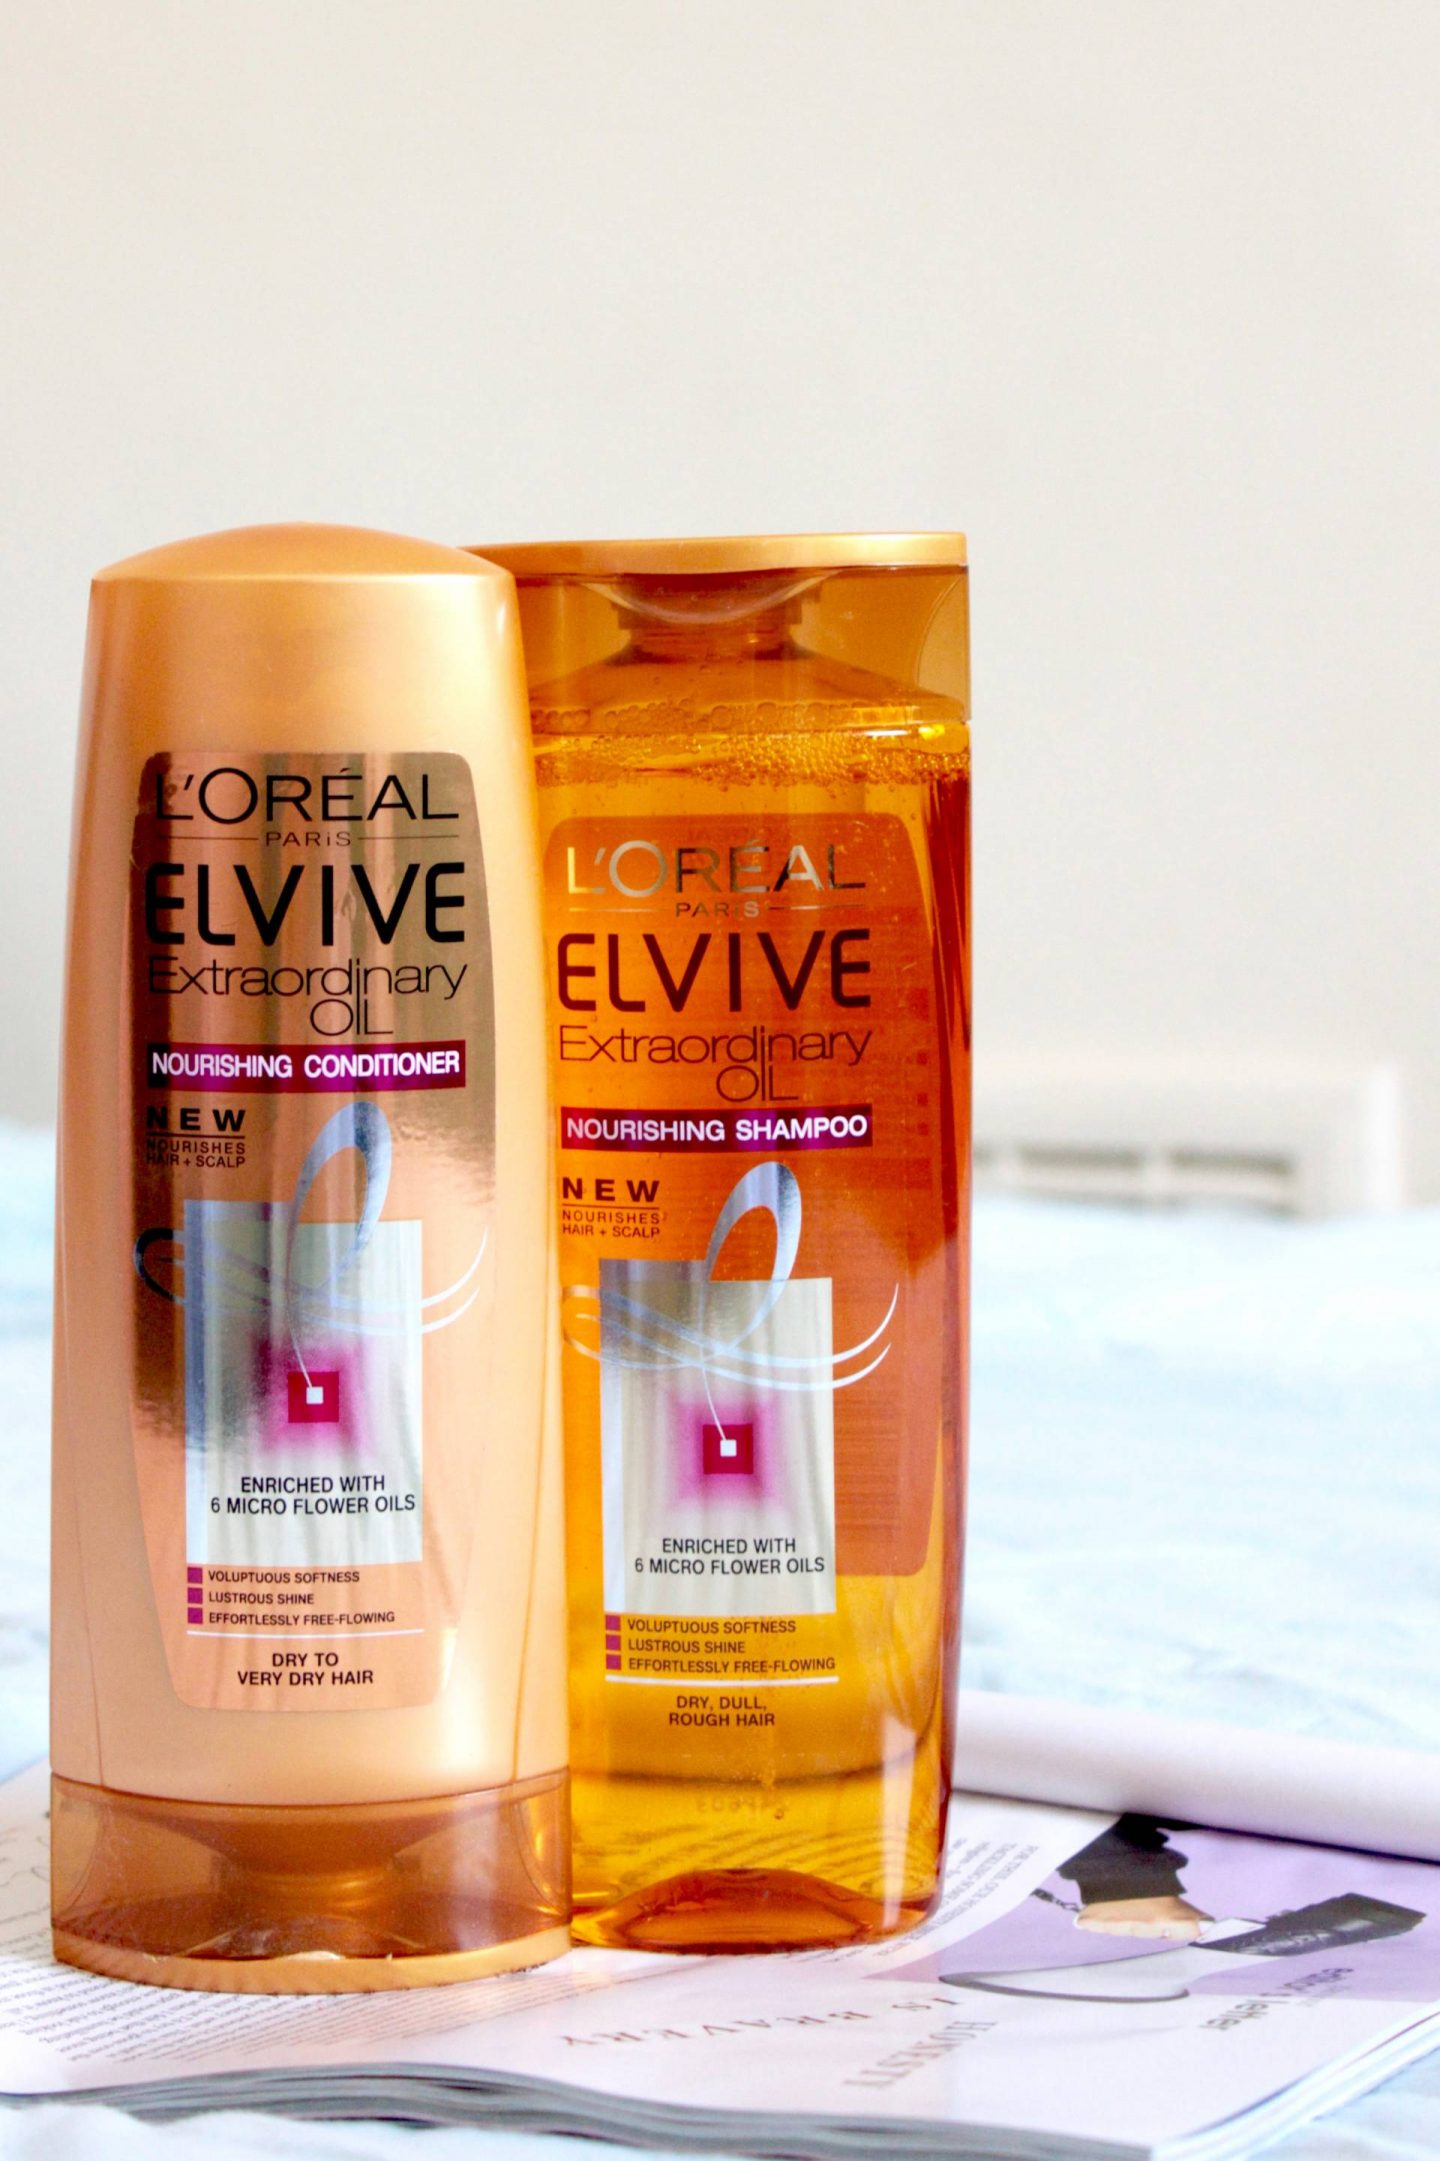 L'Oreal Elvive Extraordinary Oil Shampoo and Conditioner